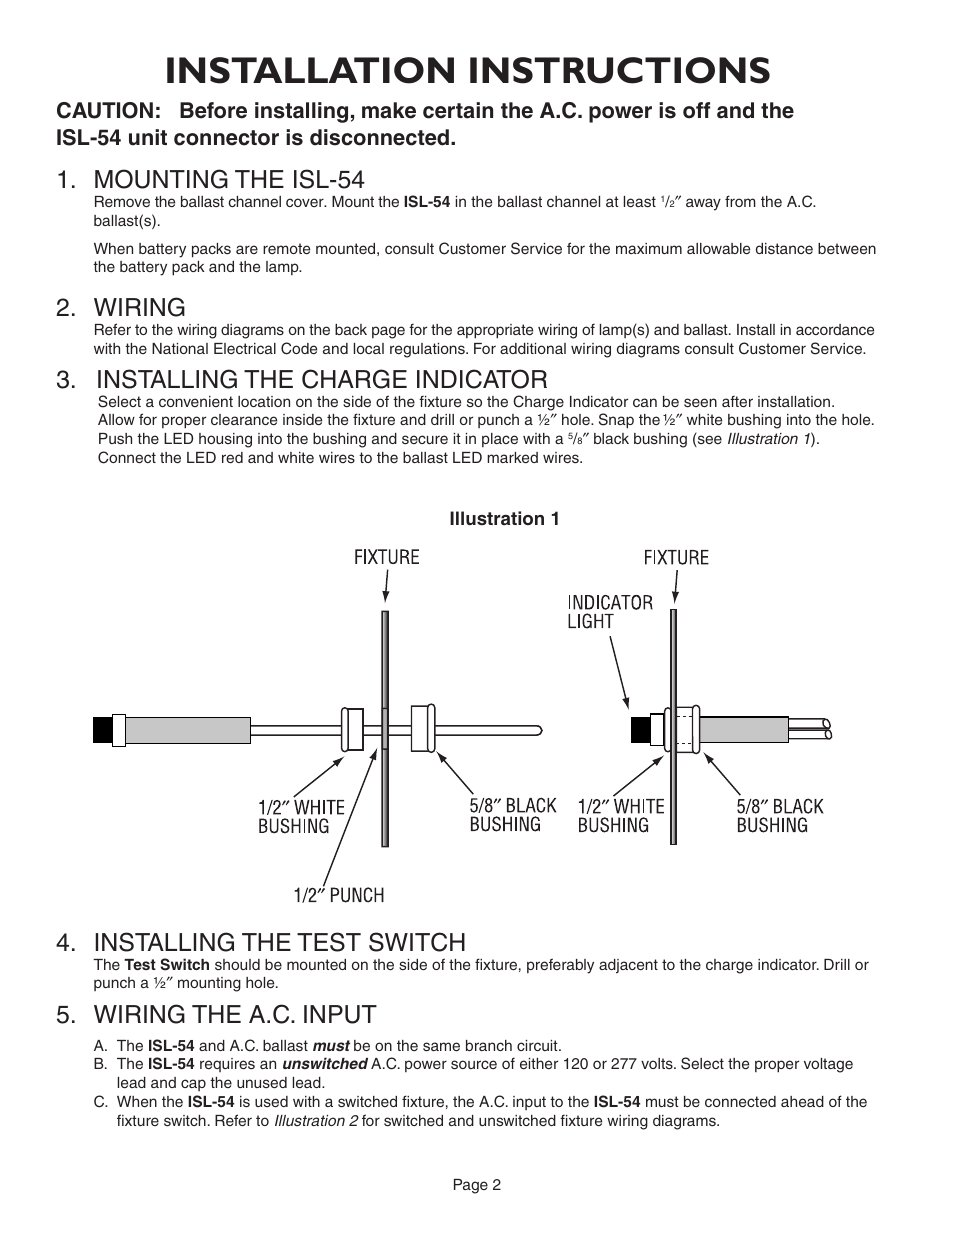 Installation Instructions Mounting The Isl 54 Wiring Iota Light Fixture 2 White Black Installing Charge Indicator